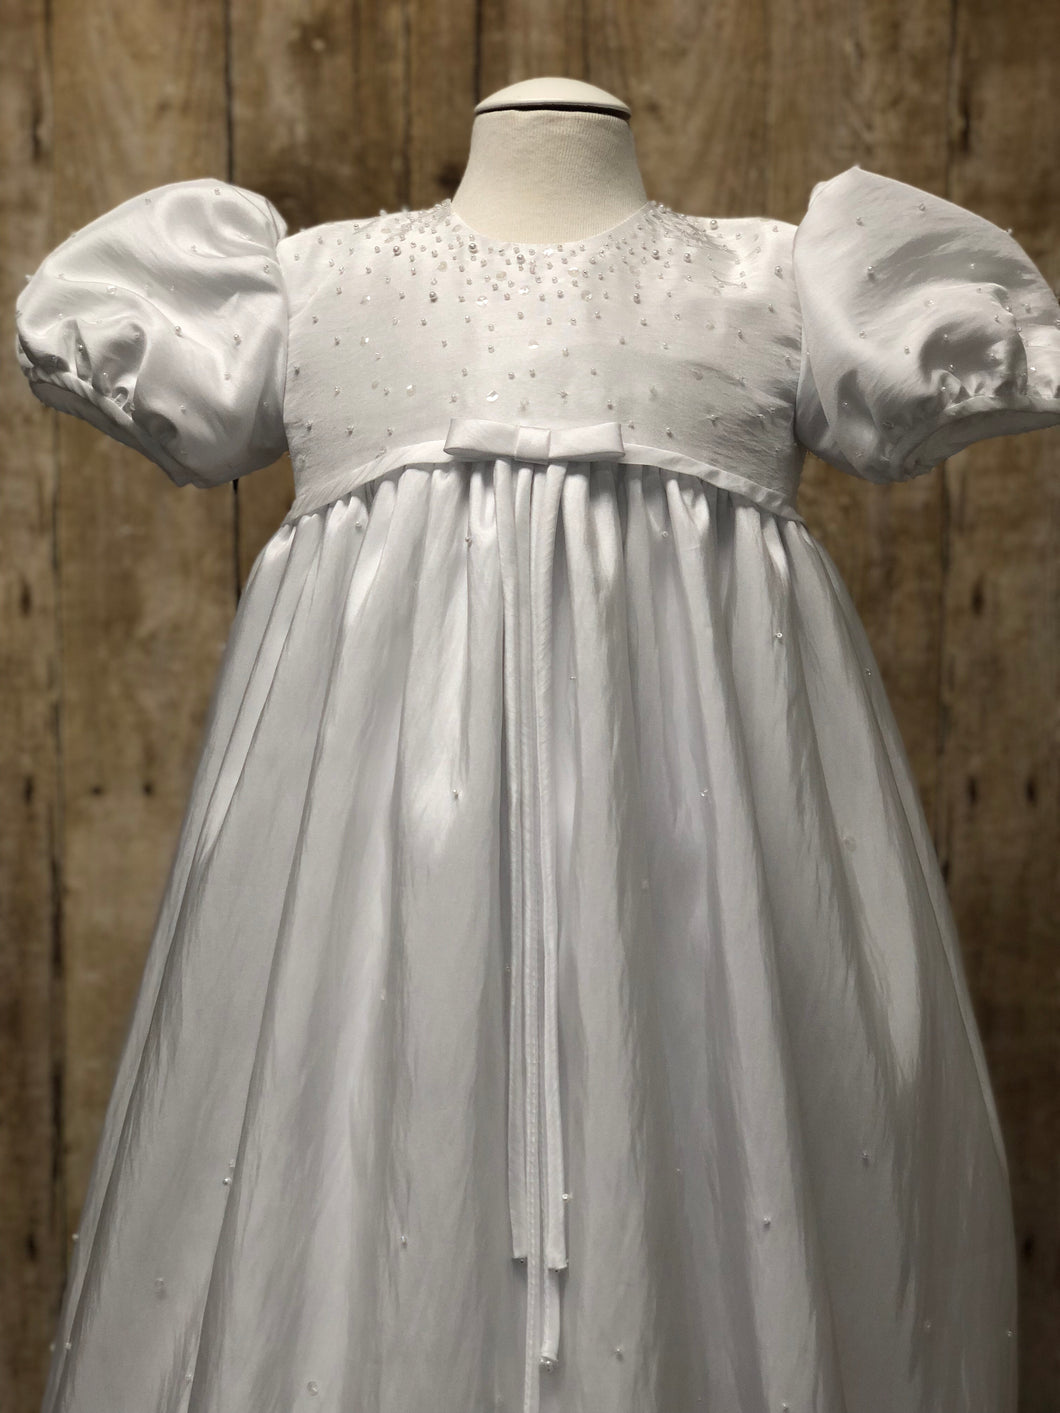 Silk Christening/Baptismal gown